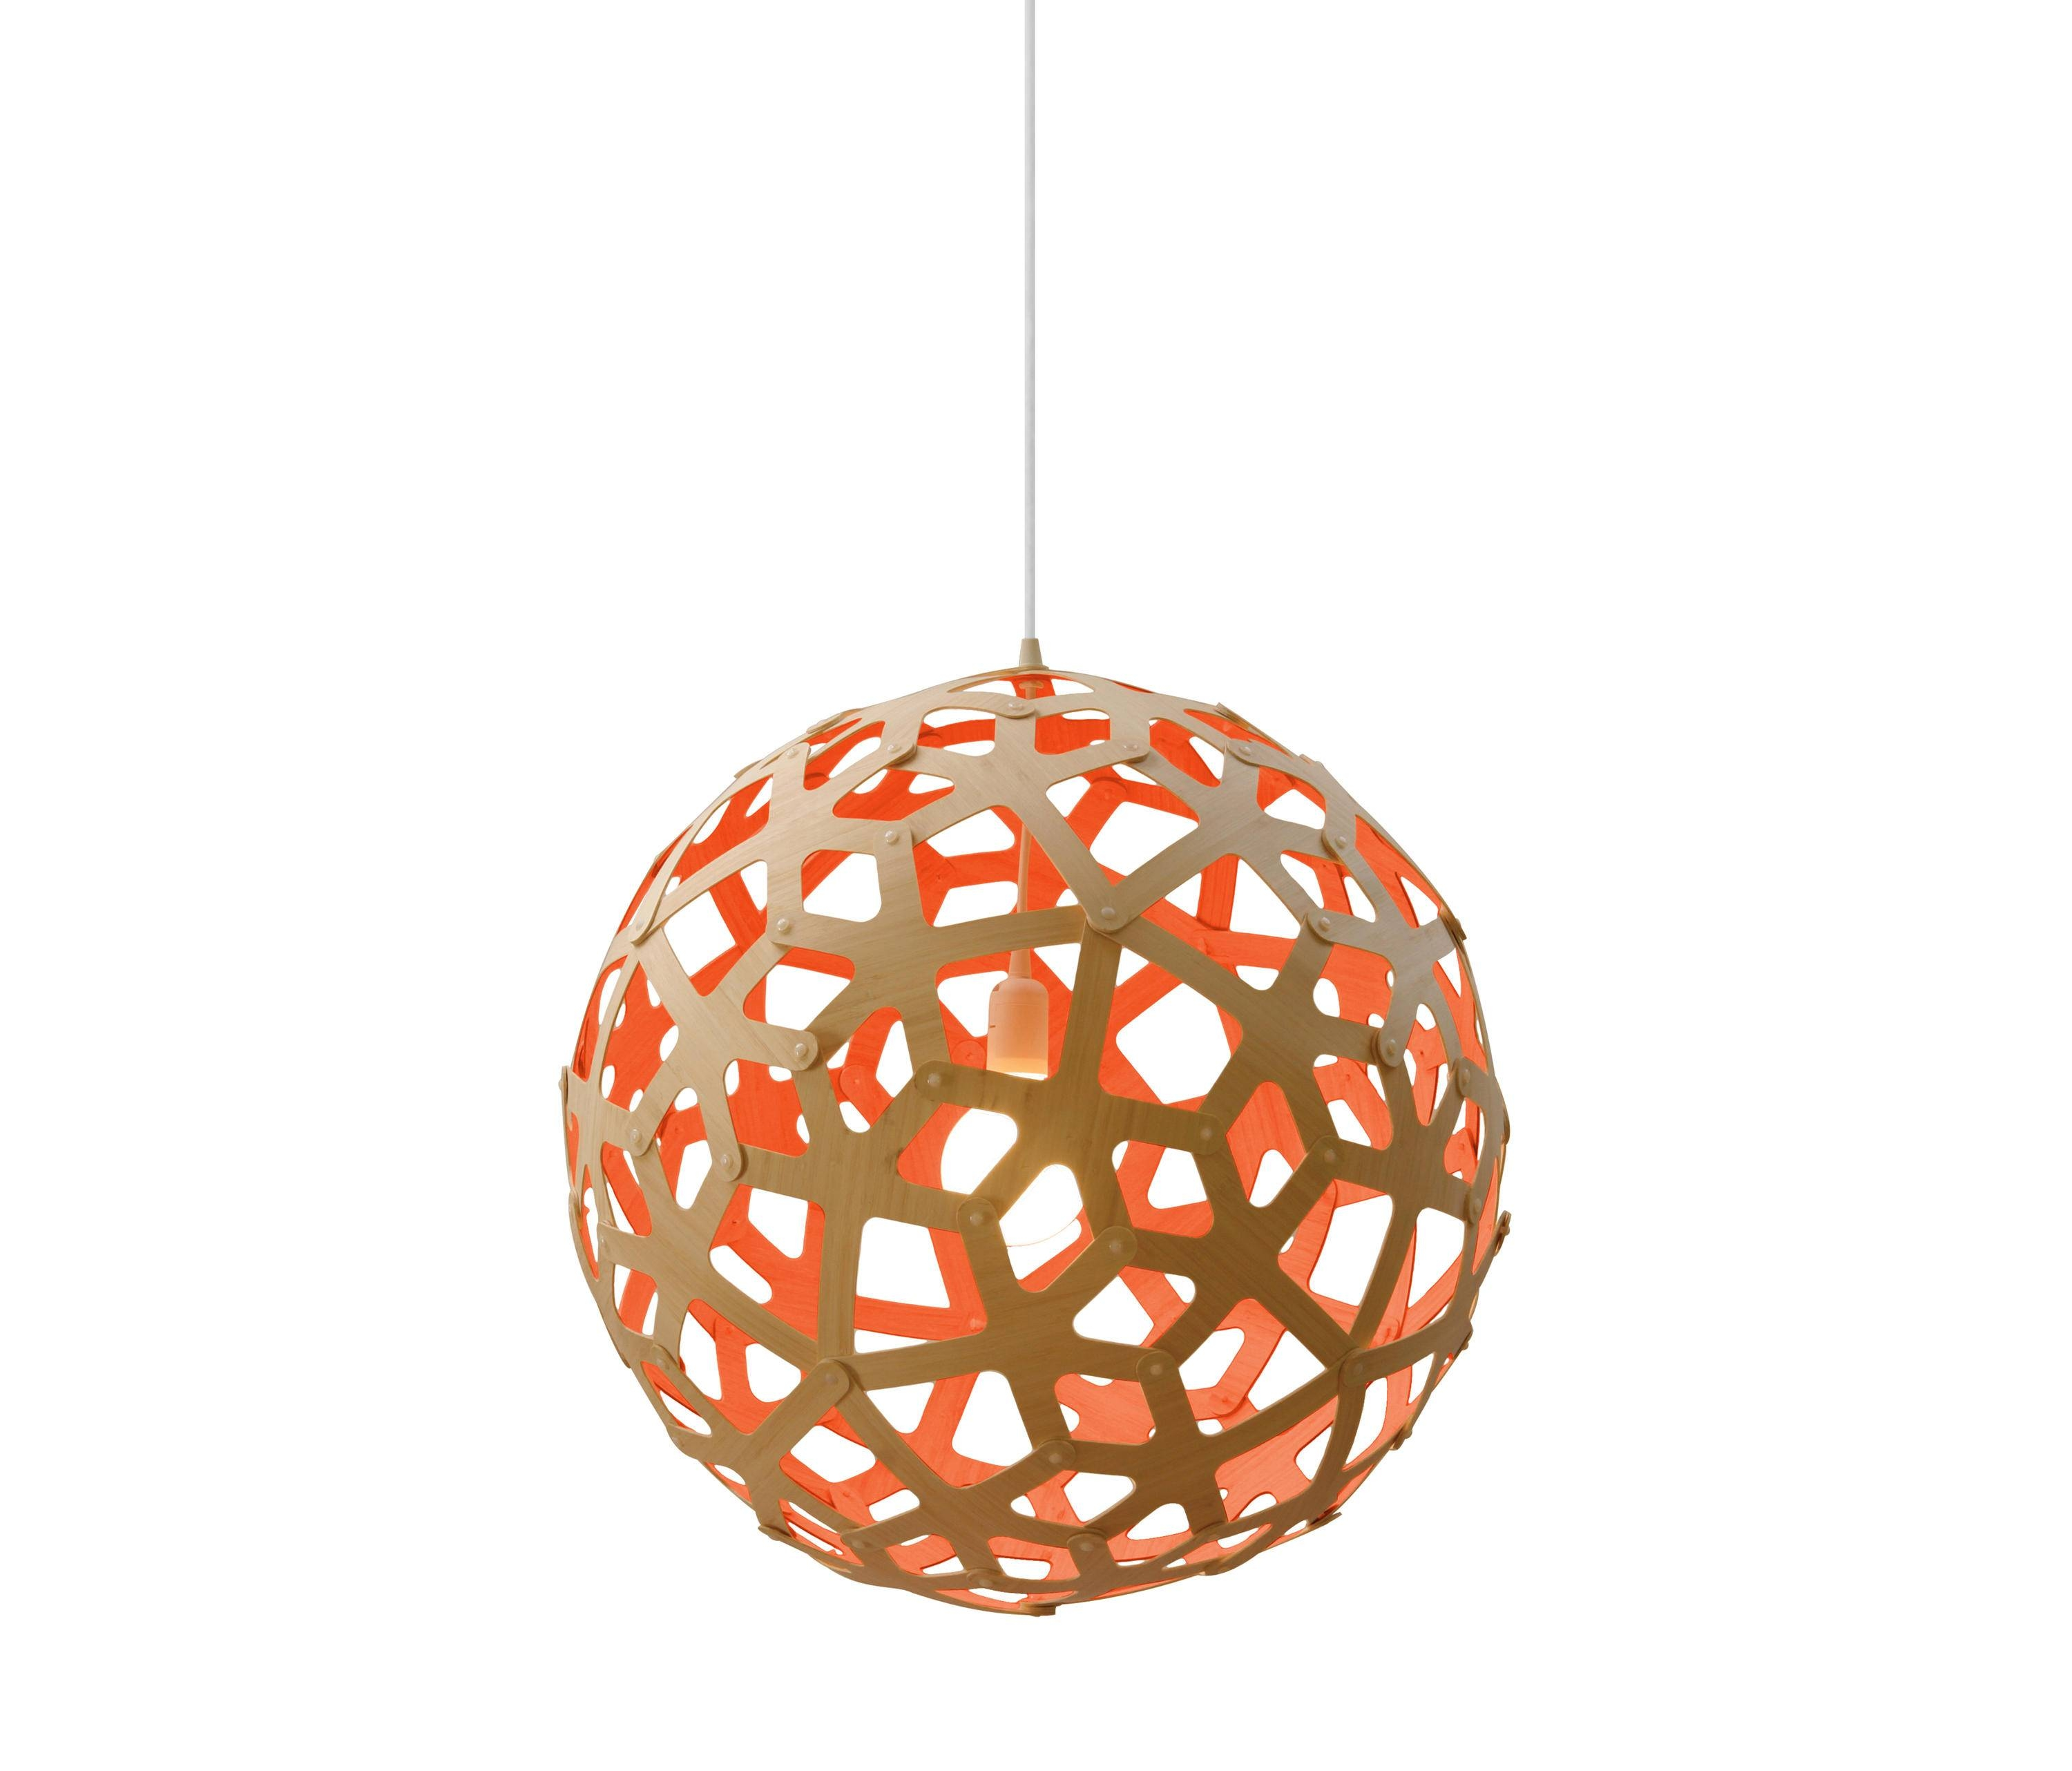 Coral - General Lighting From David Trubridge | Architonic regarding Coral Pendant Lights (Image 3 of 15)